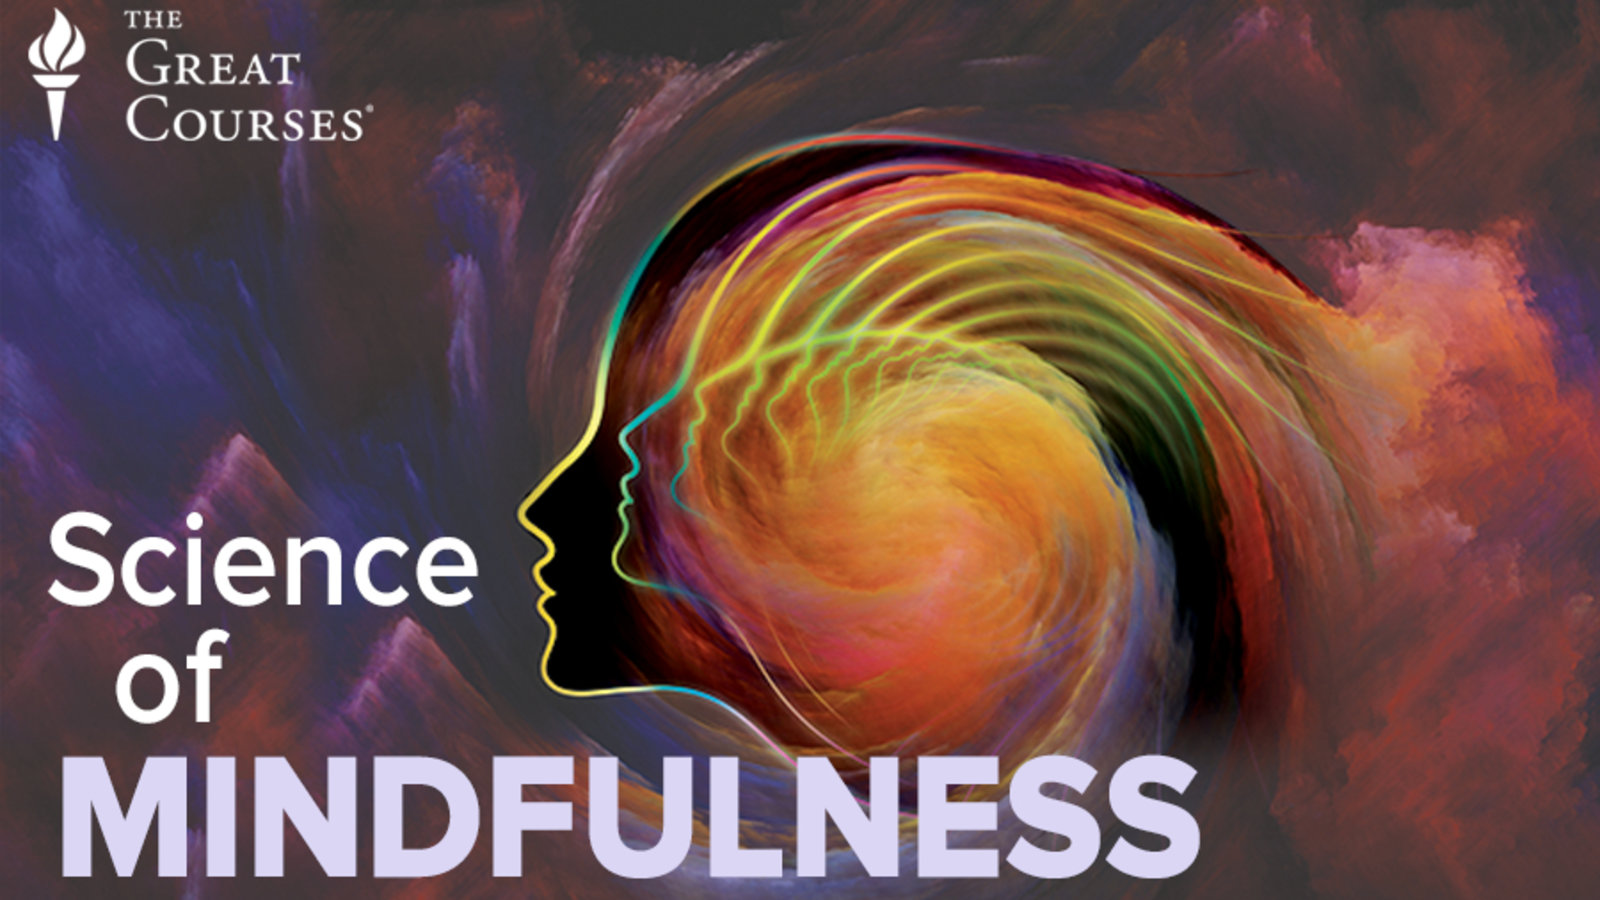 The Science of Mindfulness: A Research-Based Path to Well-Being